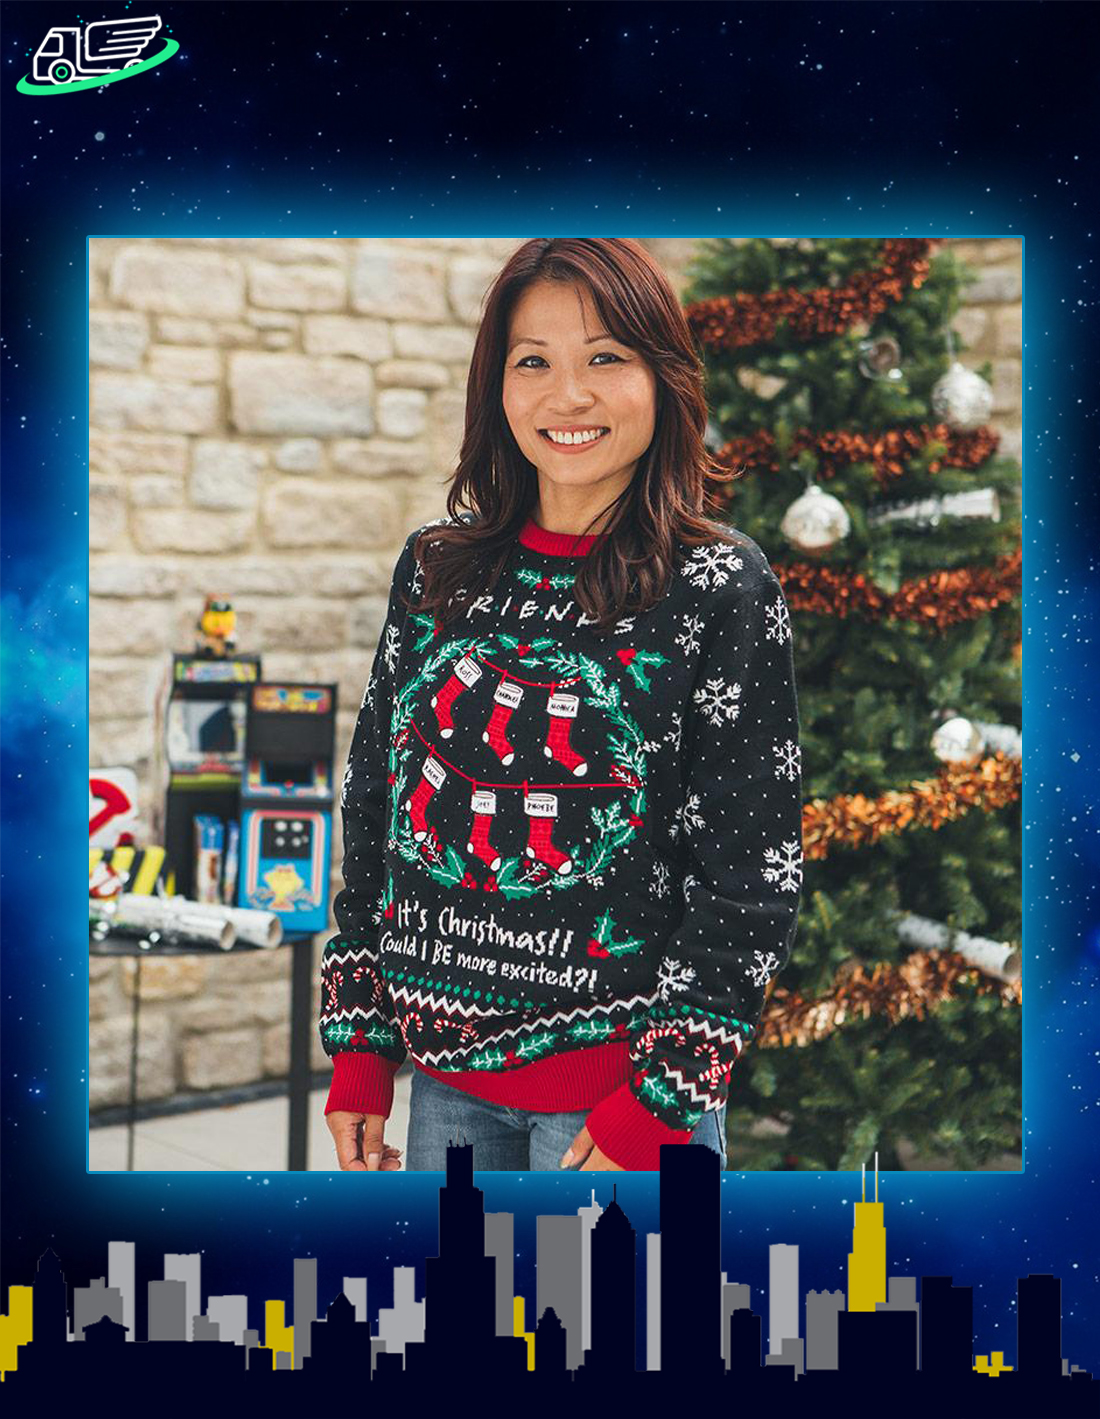 Friends it's christmas could i be more excited ugly christmas sweater and jumper